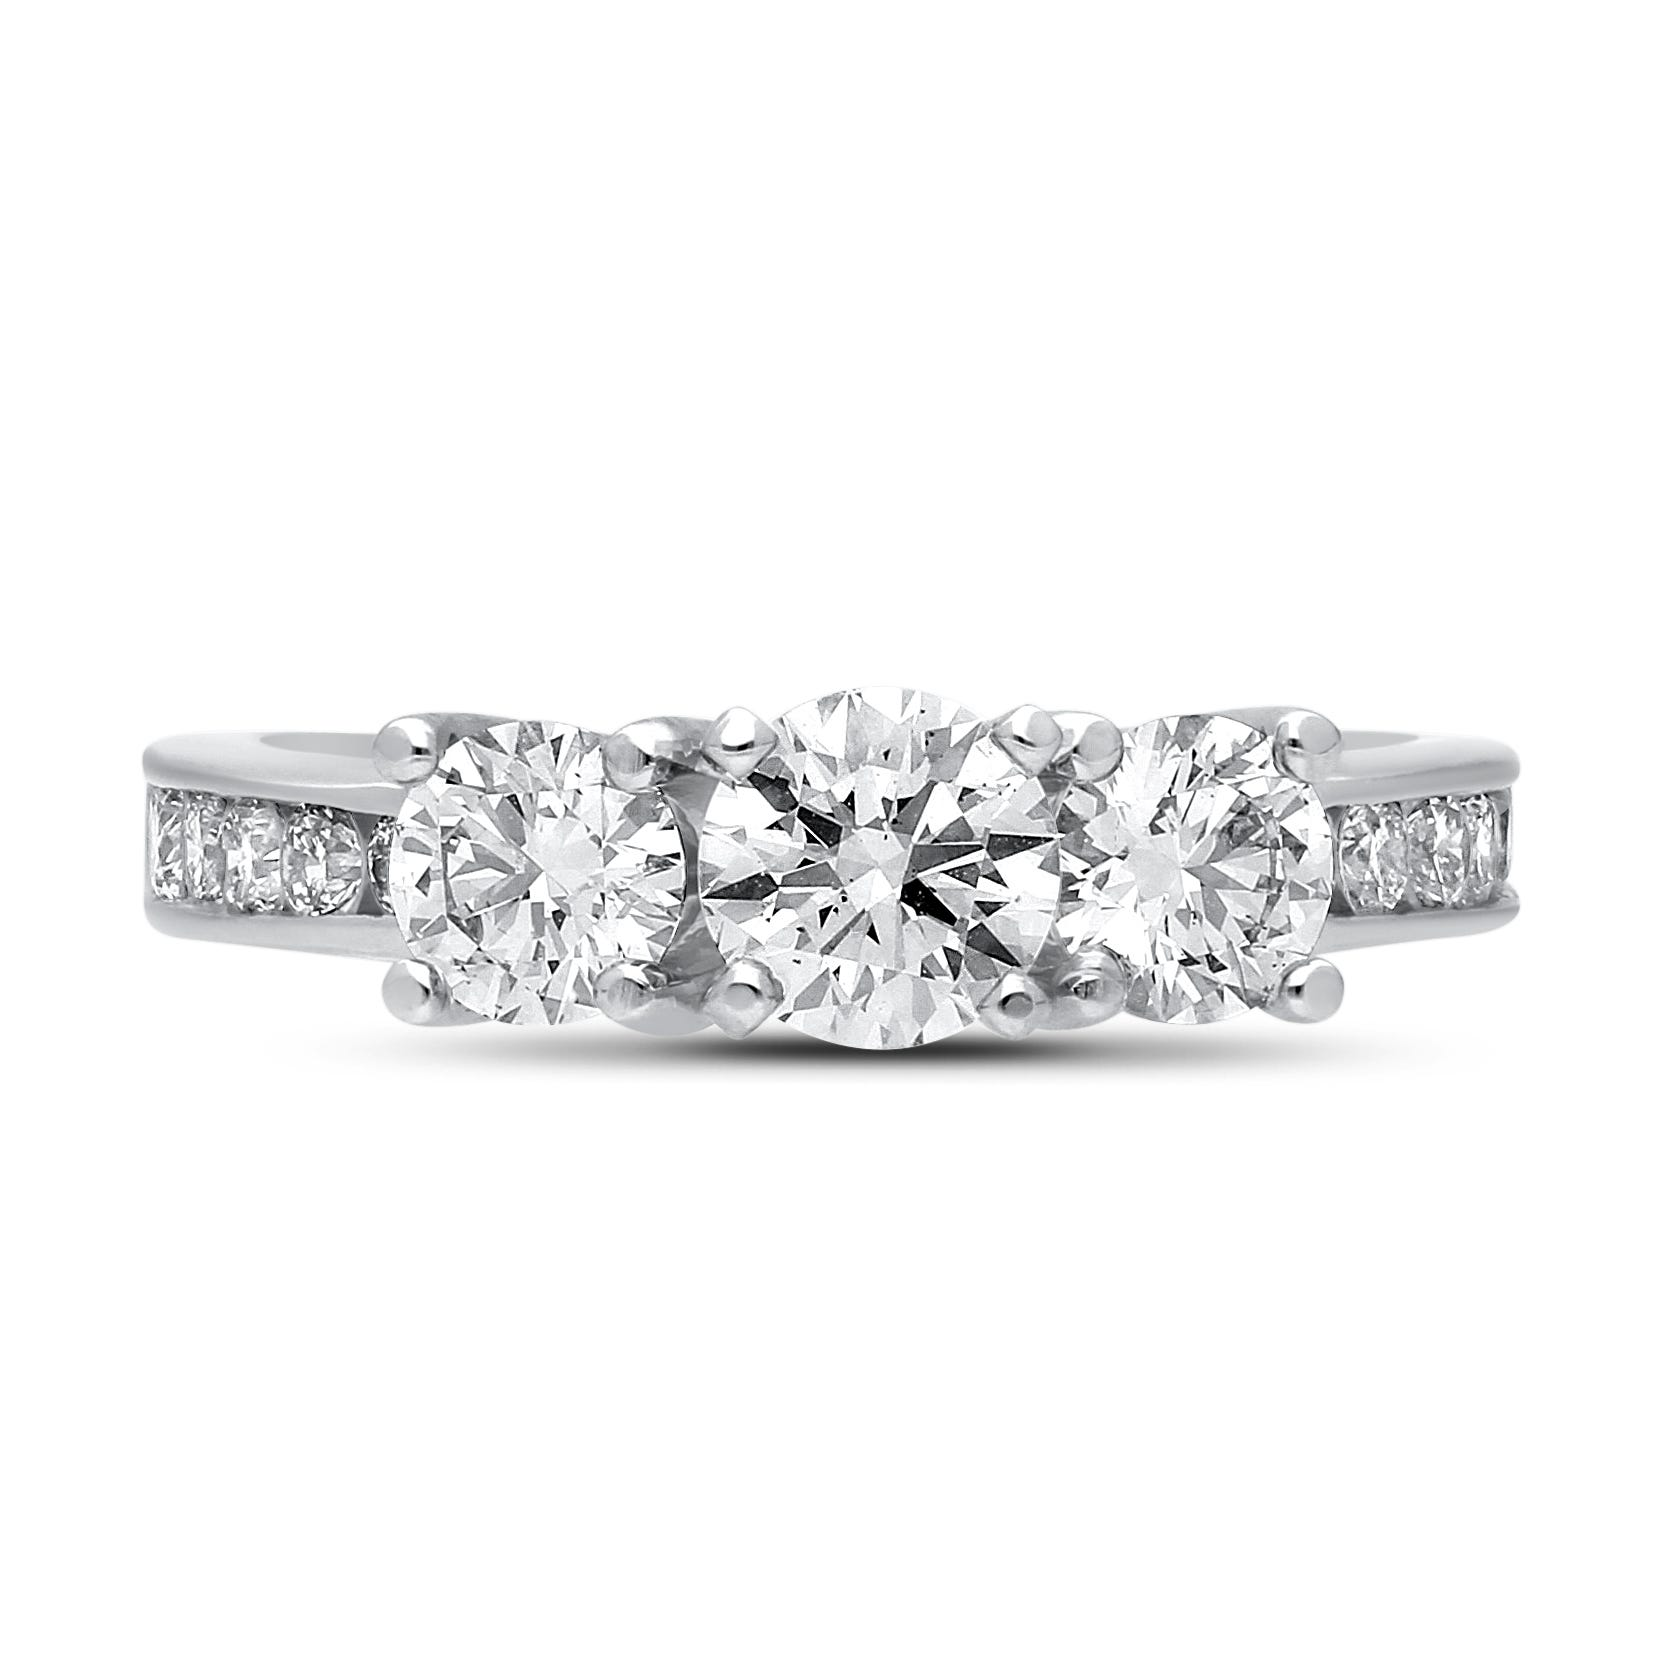 Lab-Crafted Diamond 1-1/2ctw. Three-Stone Plus Engagement Ring in 14k White Gold